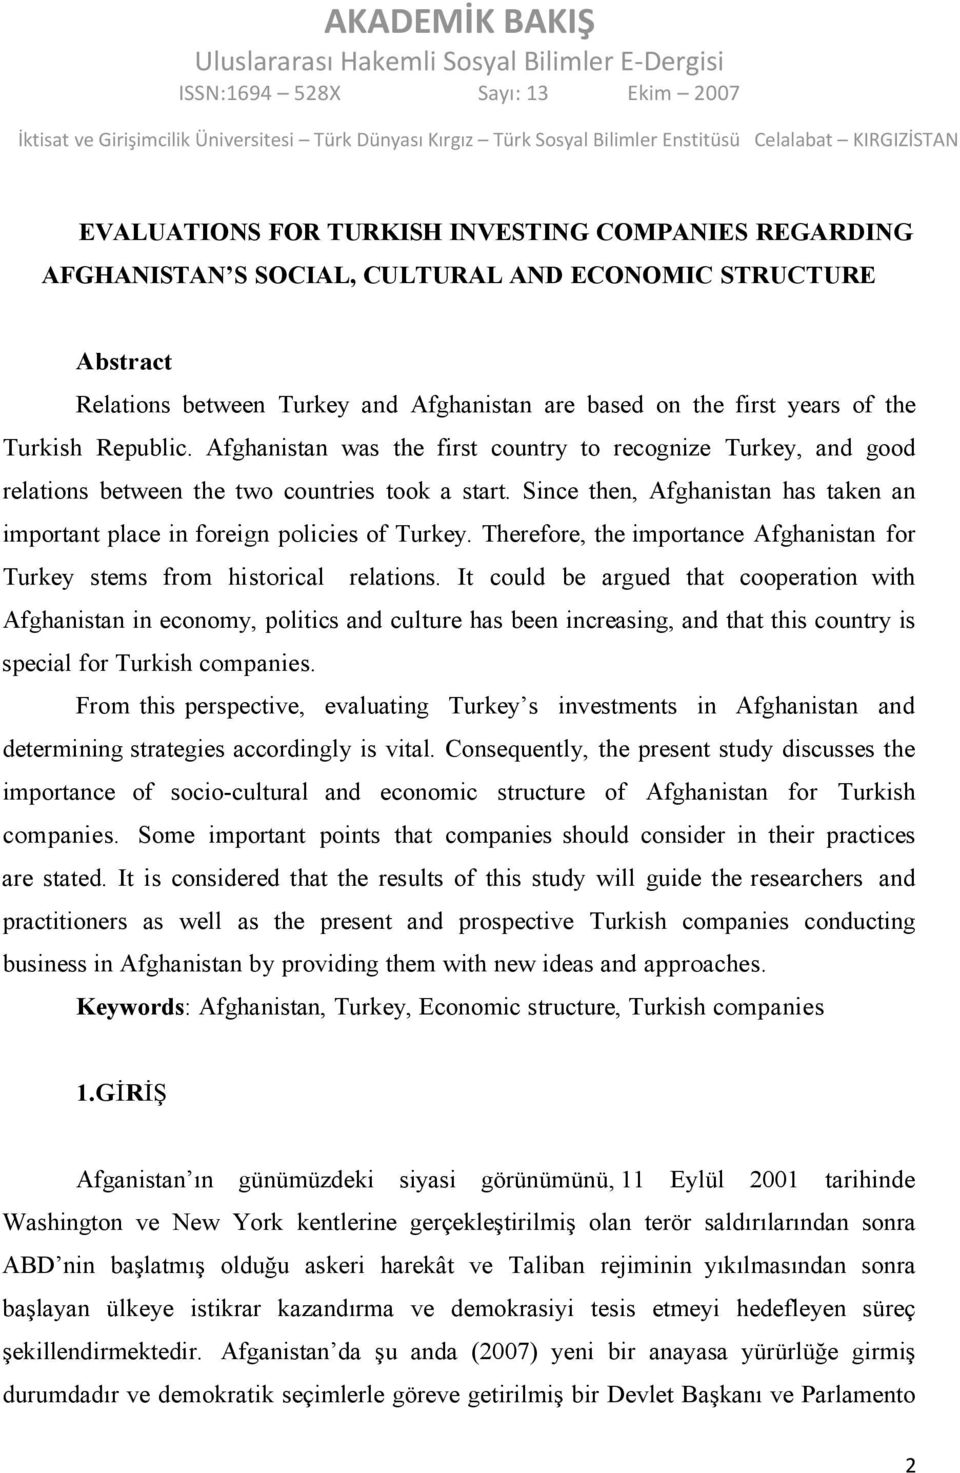 Since then, Afghanistan has taken an important place in foreign policies of Turkey. Therefore, the importance Afghanistan for Turkey stems from historical relations.